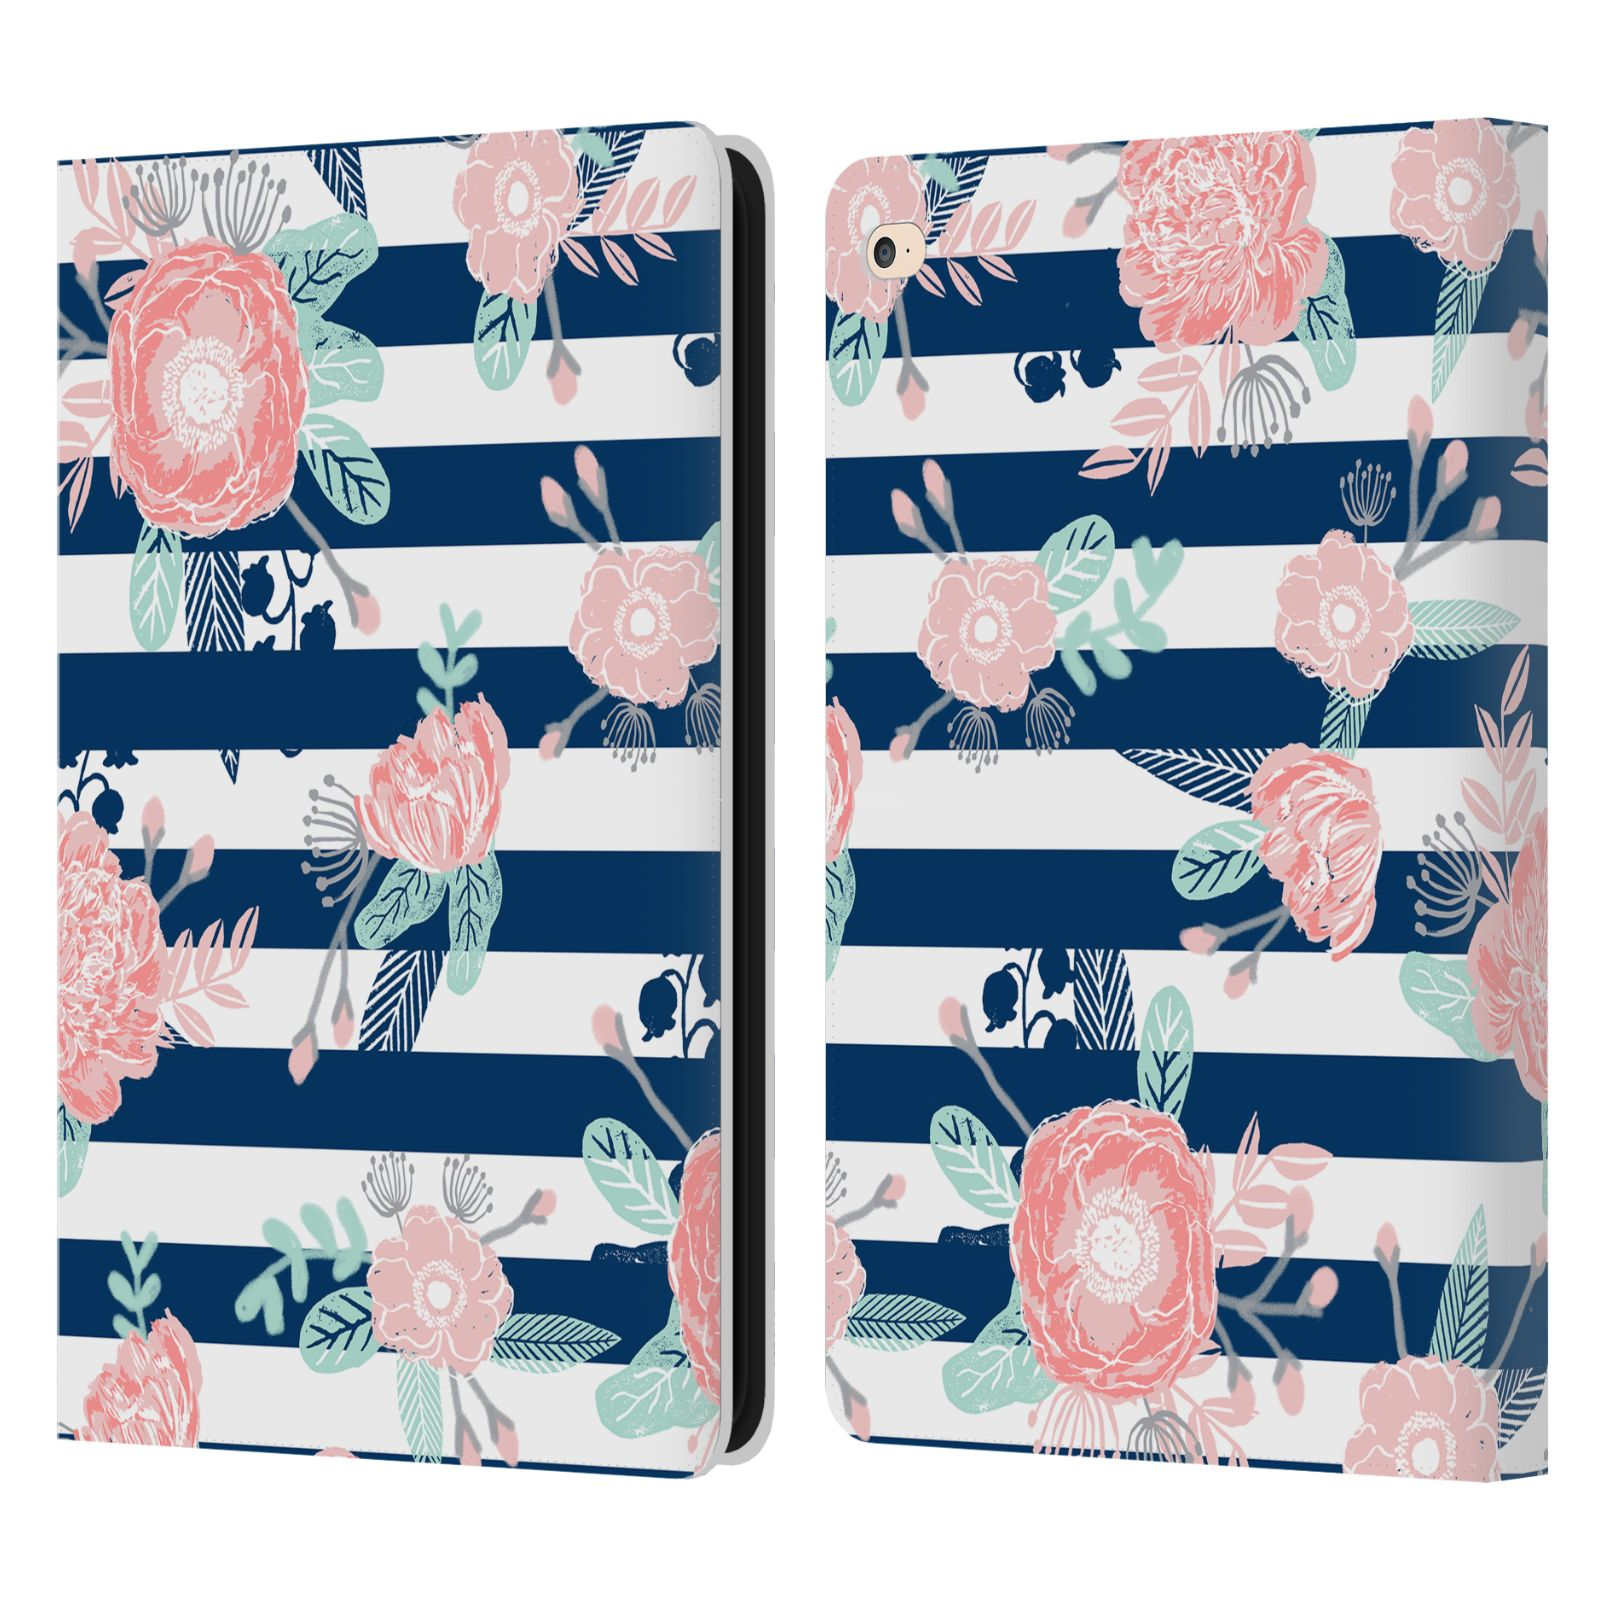 official charlotte winter floral leather book wallet case cover